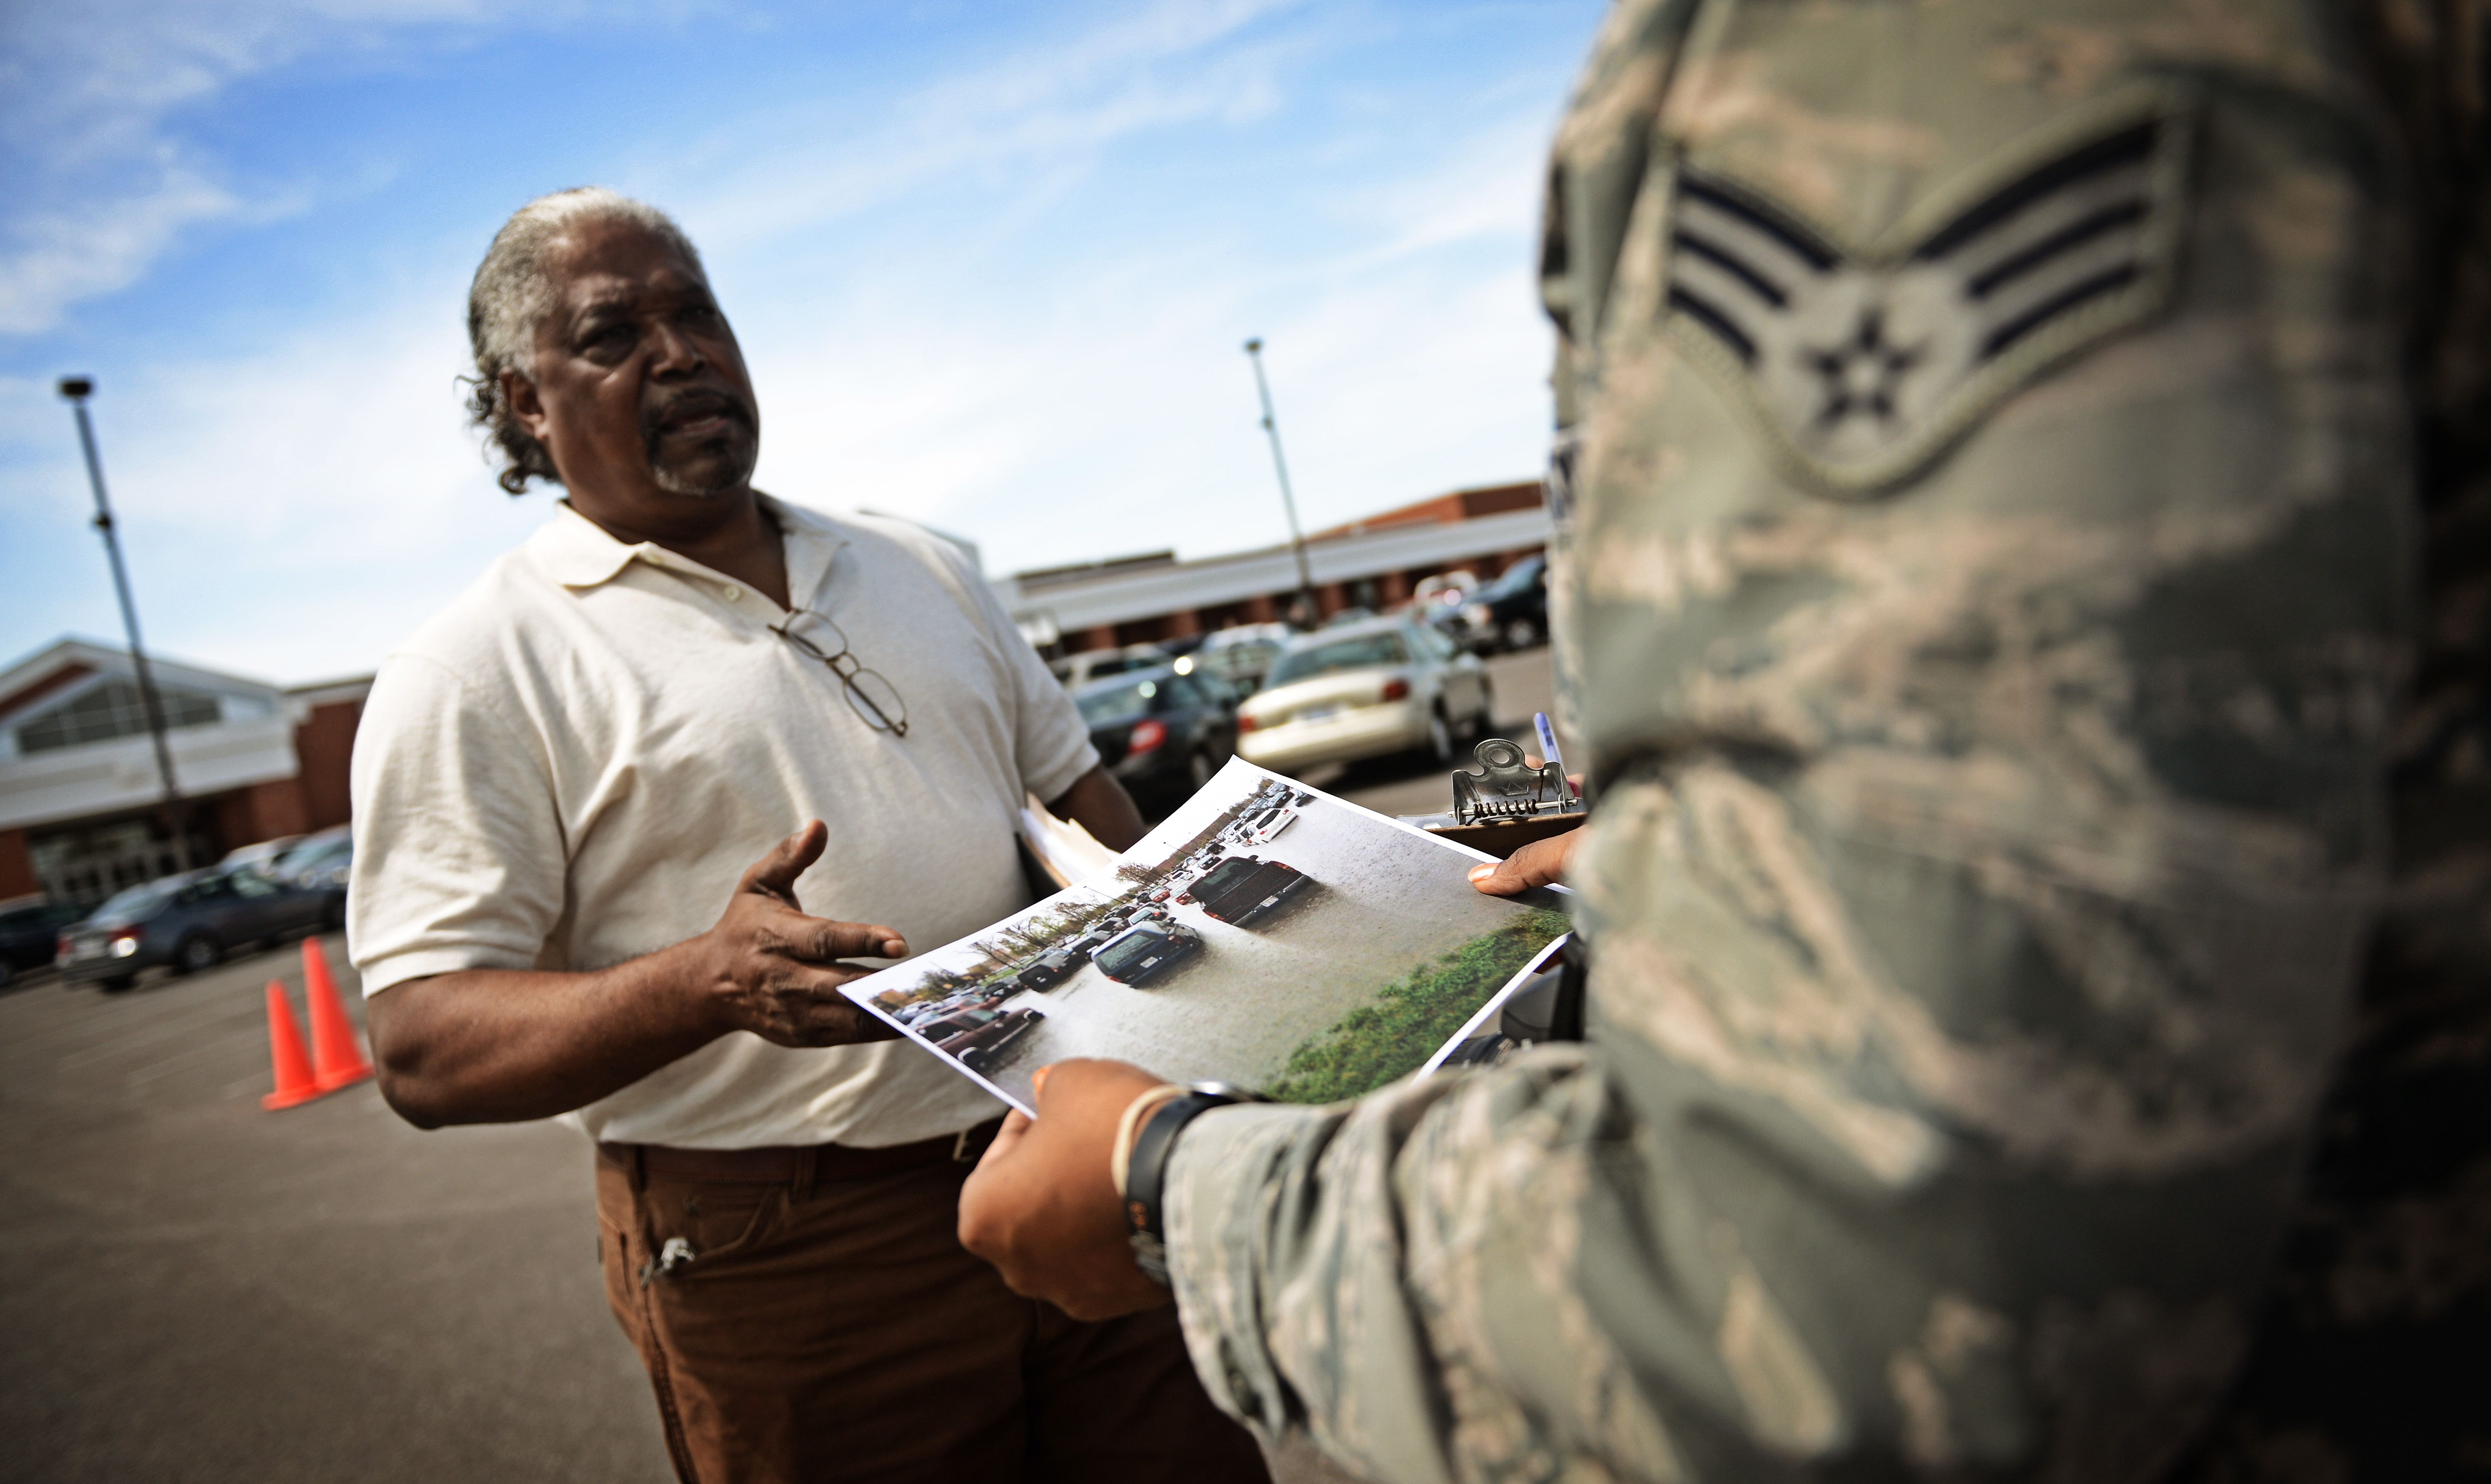 scott air force base christian personals Similarly to scott, wright-patterson air force base in ohio enjoys low housing costs, a large commissary, a huge 300-bed medical center, and a large exchange with a mall and a shoppette.